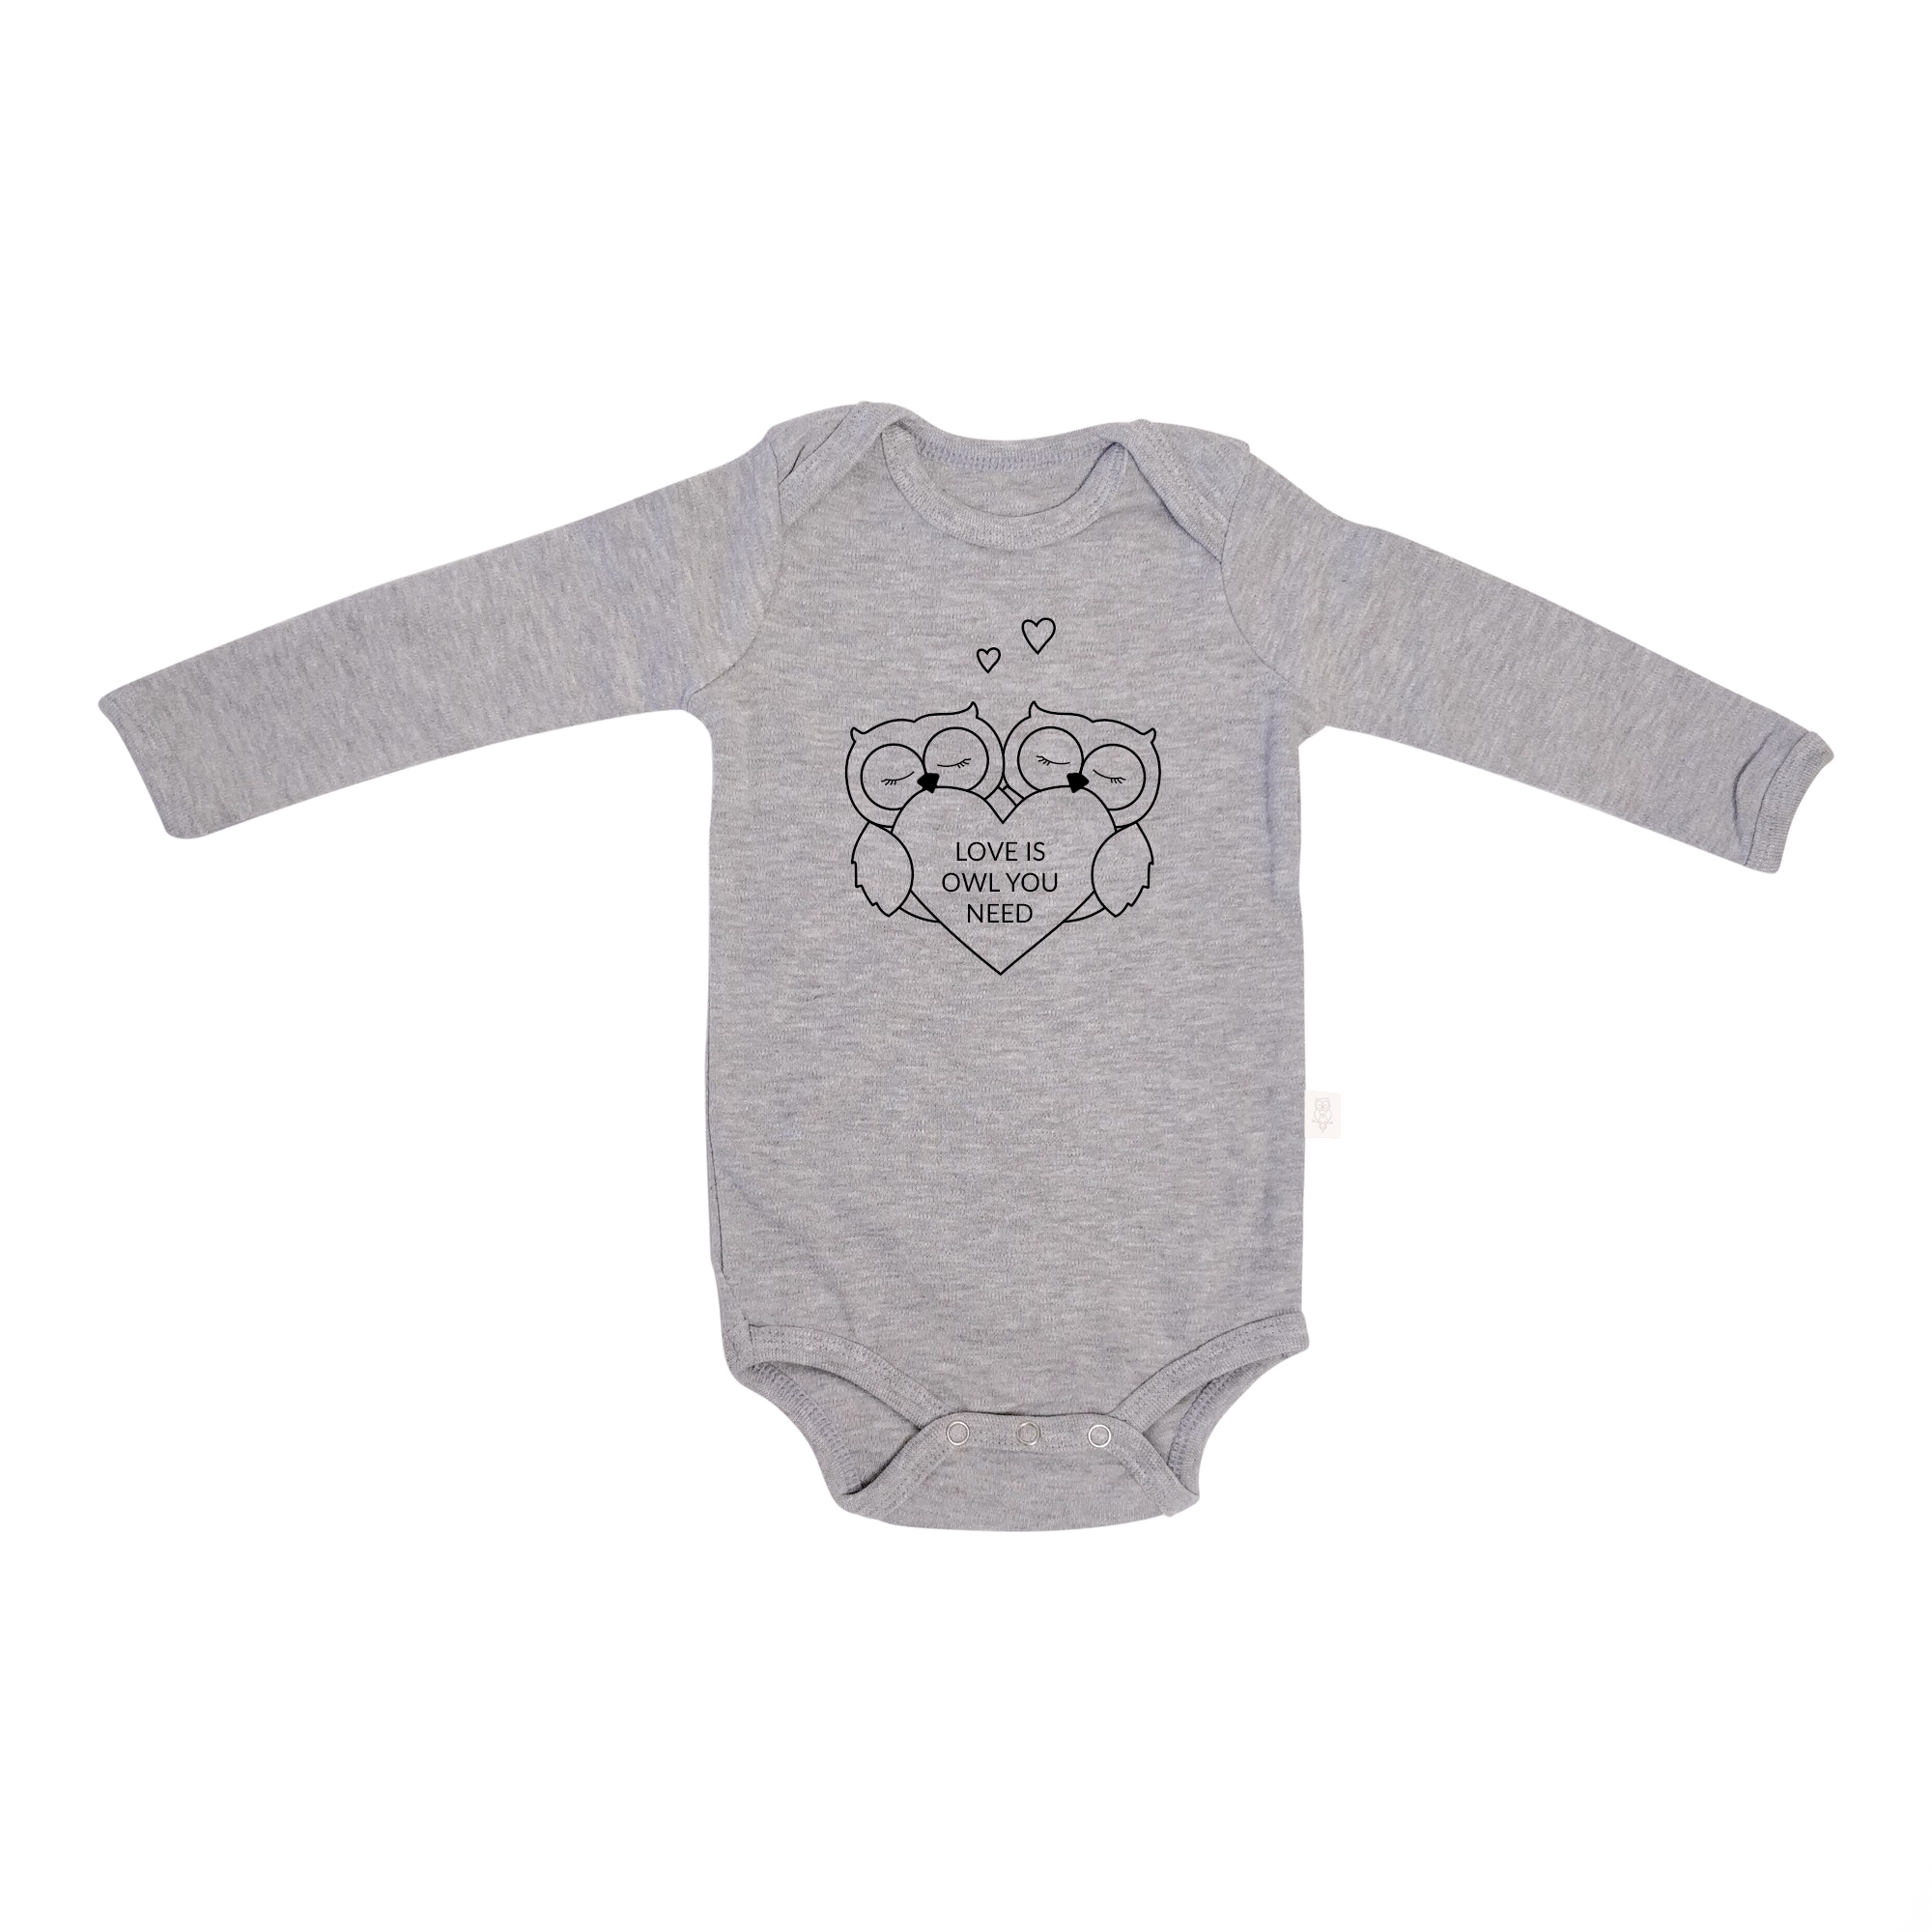 Image of MamaMilla body - Love is owl you need (43598685)